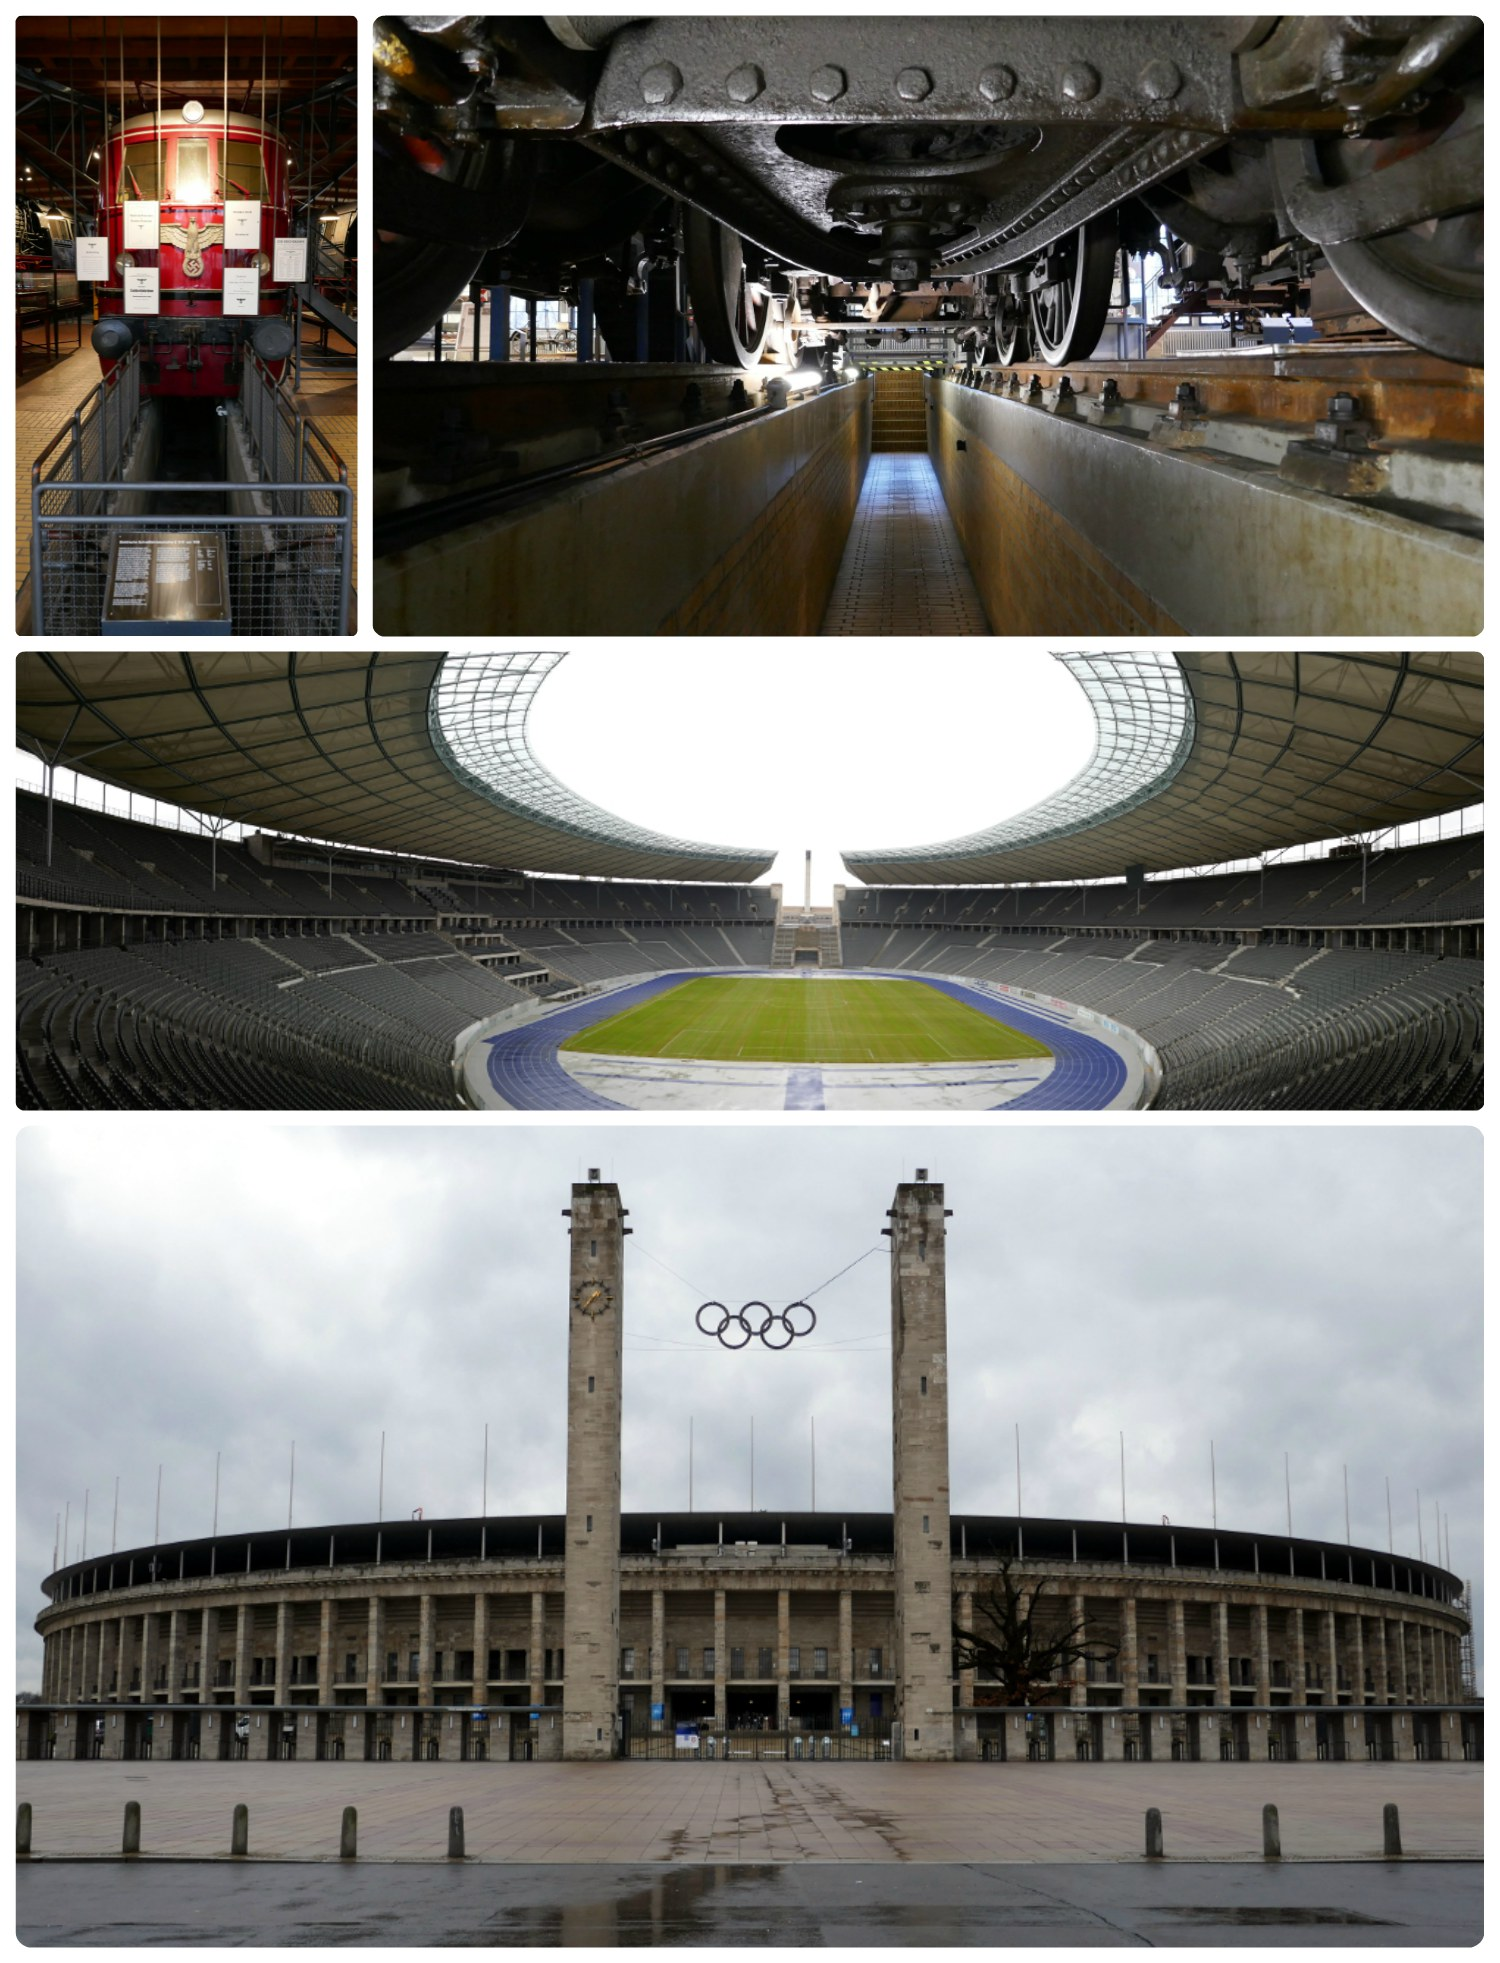 Berlin, Germany. Clockwise (from the top left): German Reich train at the German Museum of Technology, underneath a rail train at the German Museum of Technology, inside Olympiastadion, exterior of Olympiastadion where the 1936 Olympics where held.